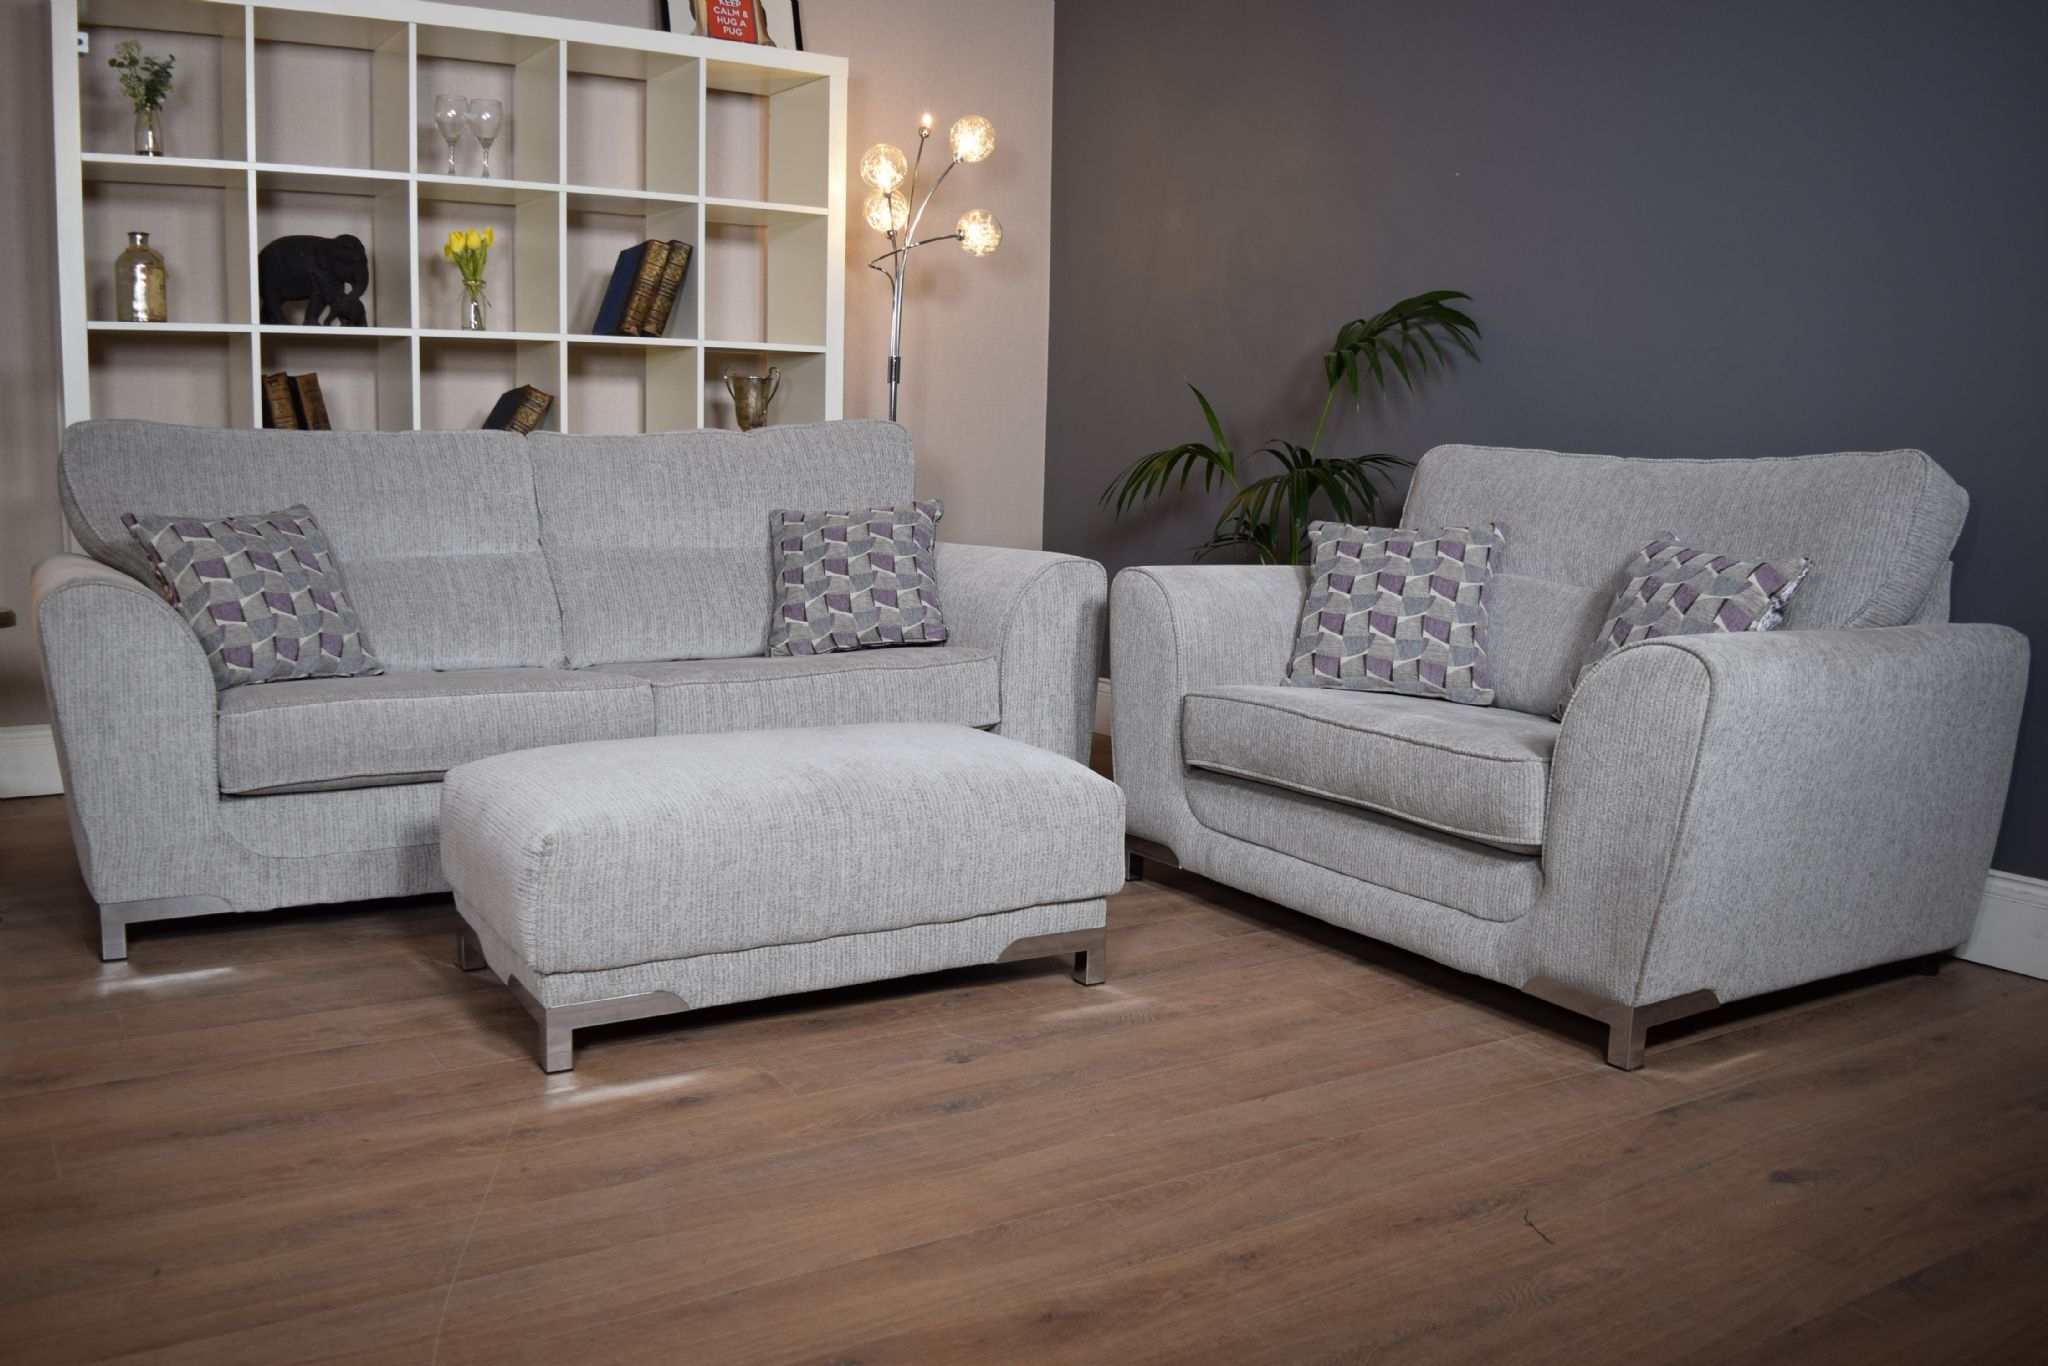 Set Nikki 3 Seater Sofa Cuddle Chair & Footstool Suite Set - Light regarding 3 Seater Sofas And Cuddle Chairs (Image 10 of 10)